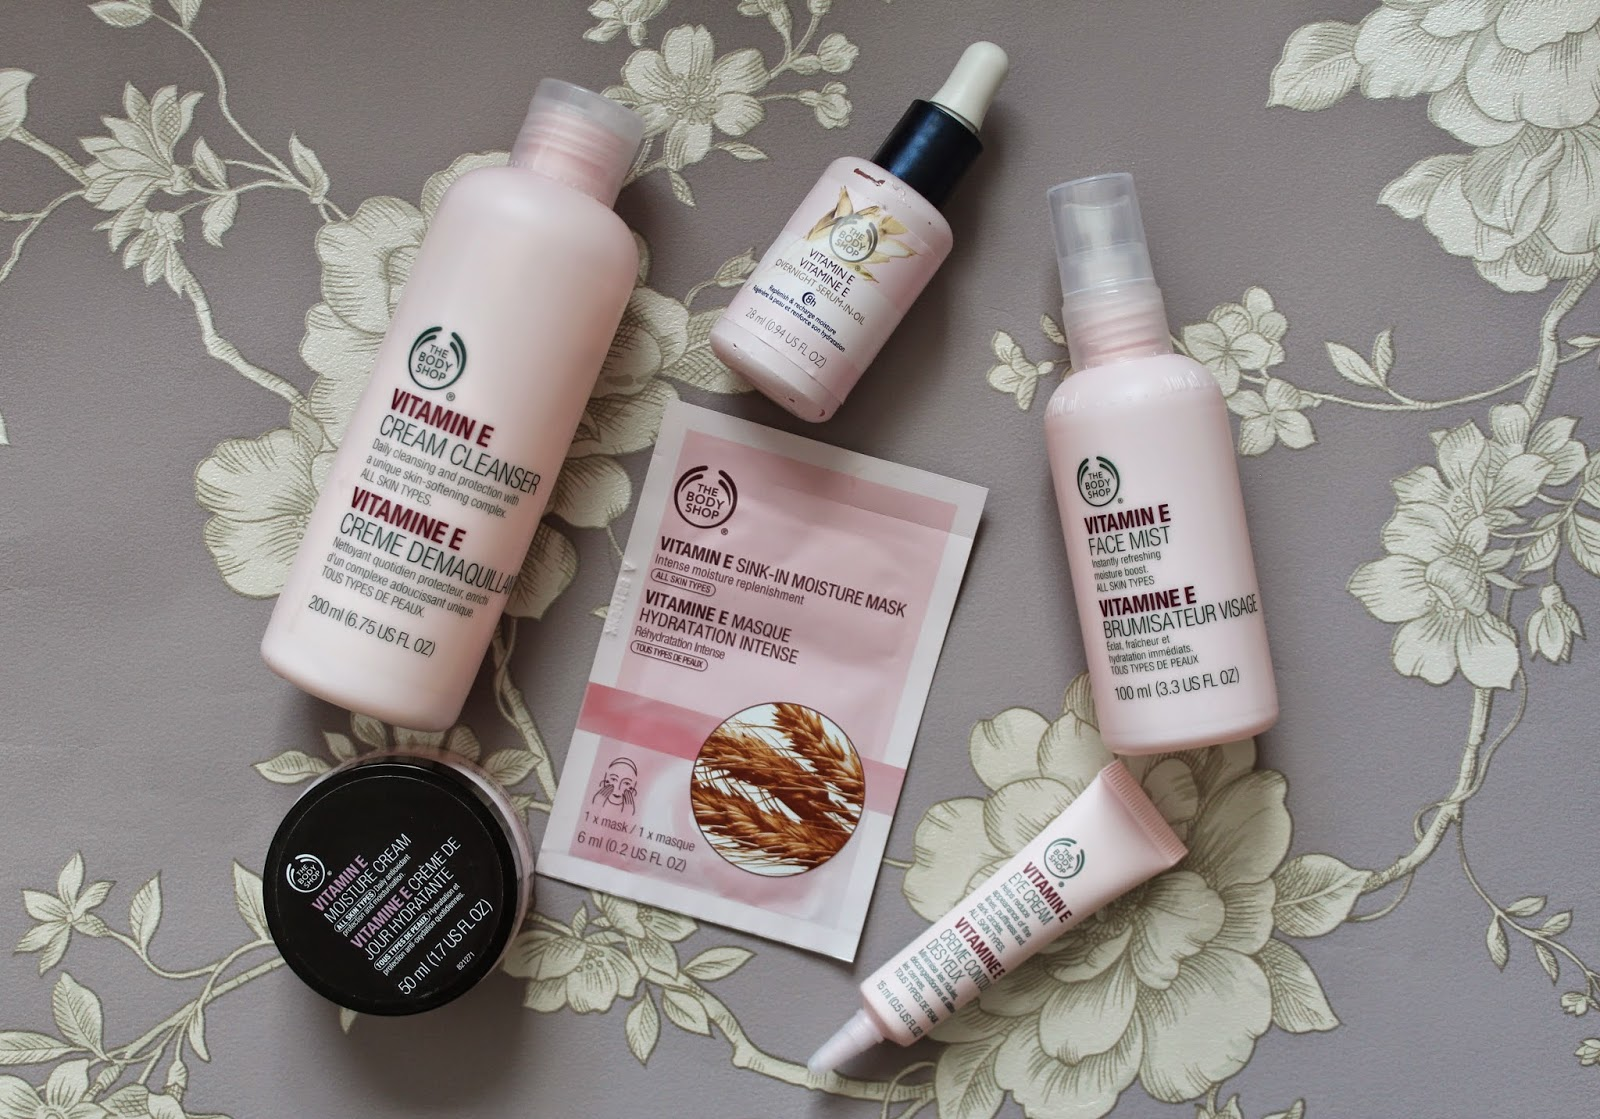 the body shop vitamin e cream cleanser overnight serum in oil moisture cream moisturiser eye cream face mask face mist skincare skin beauty bloggers